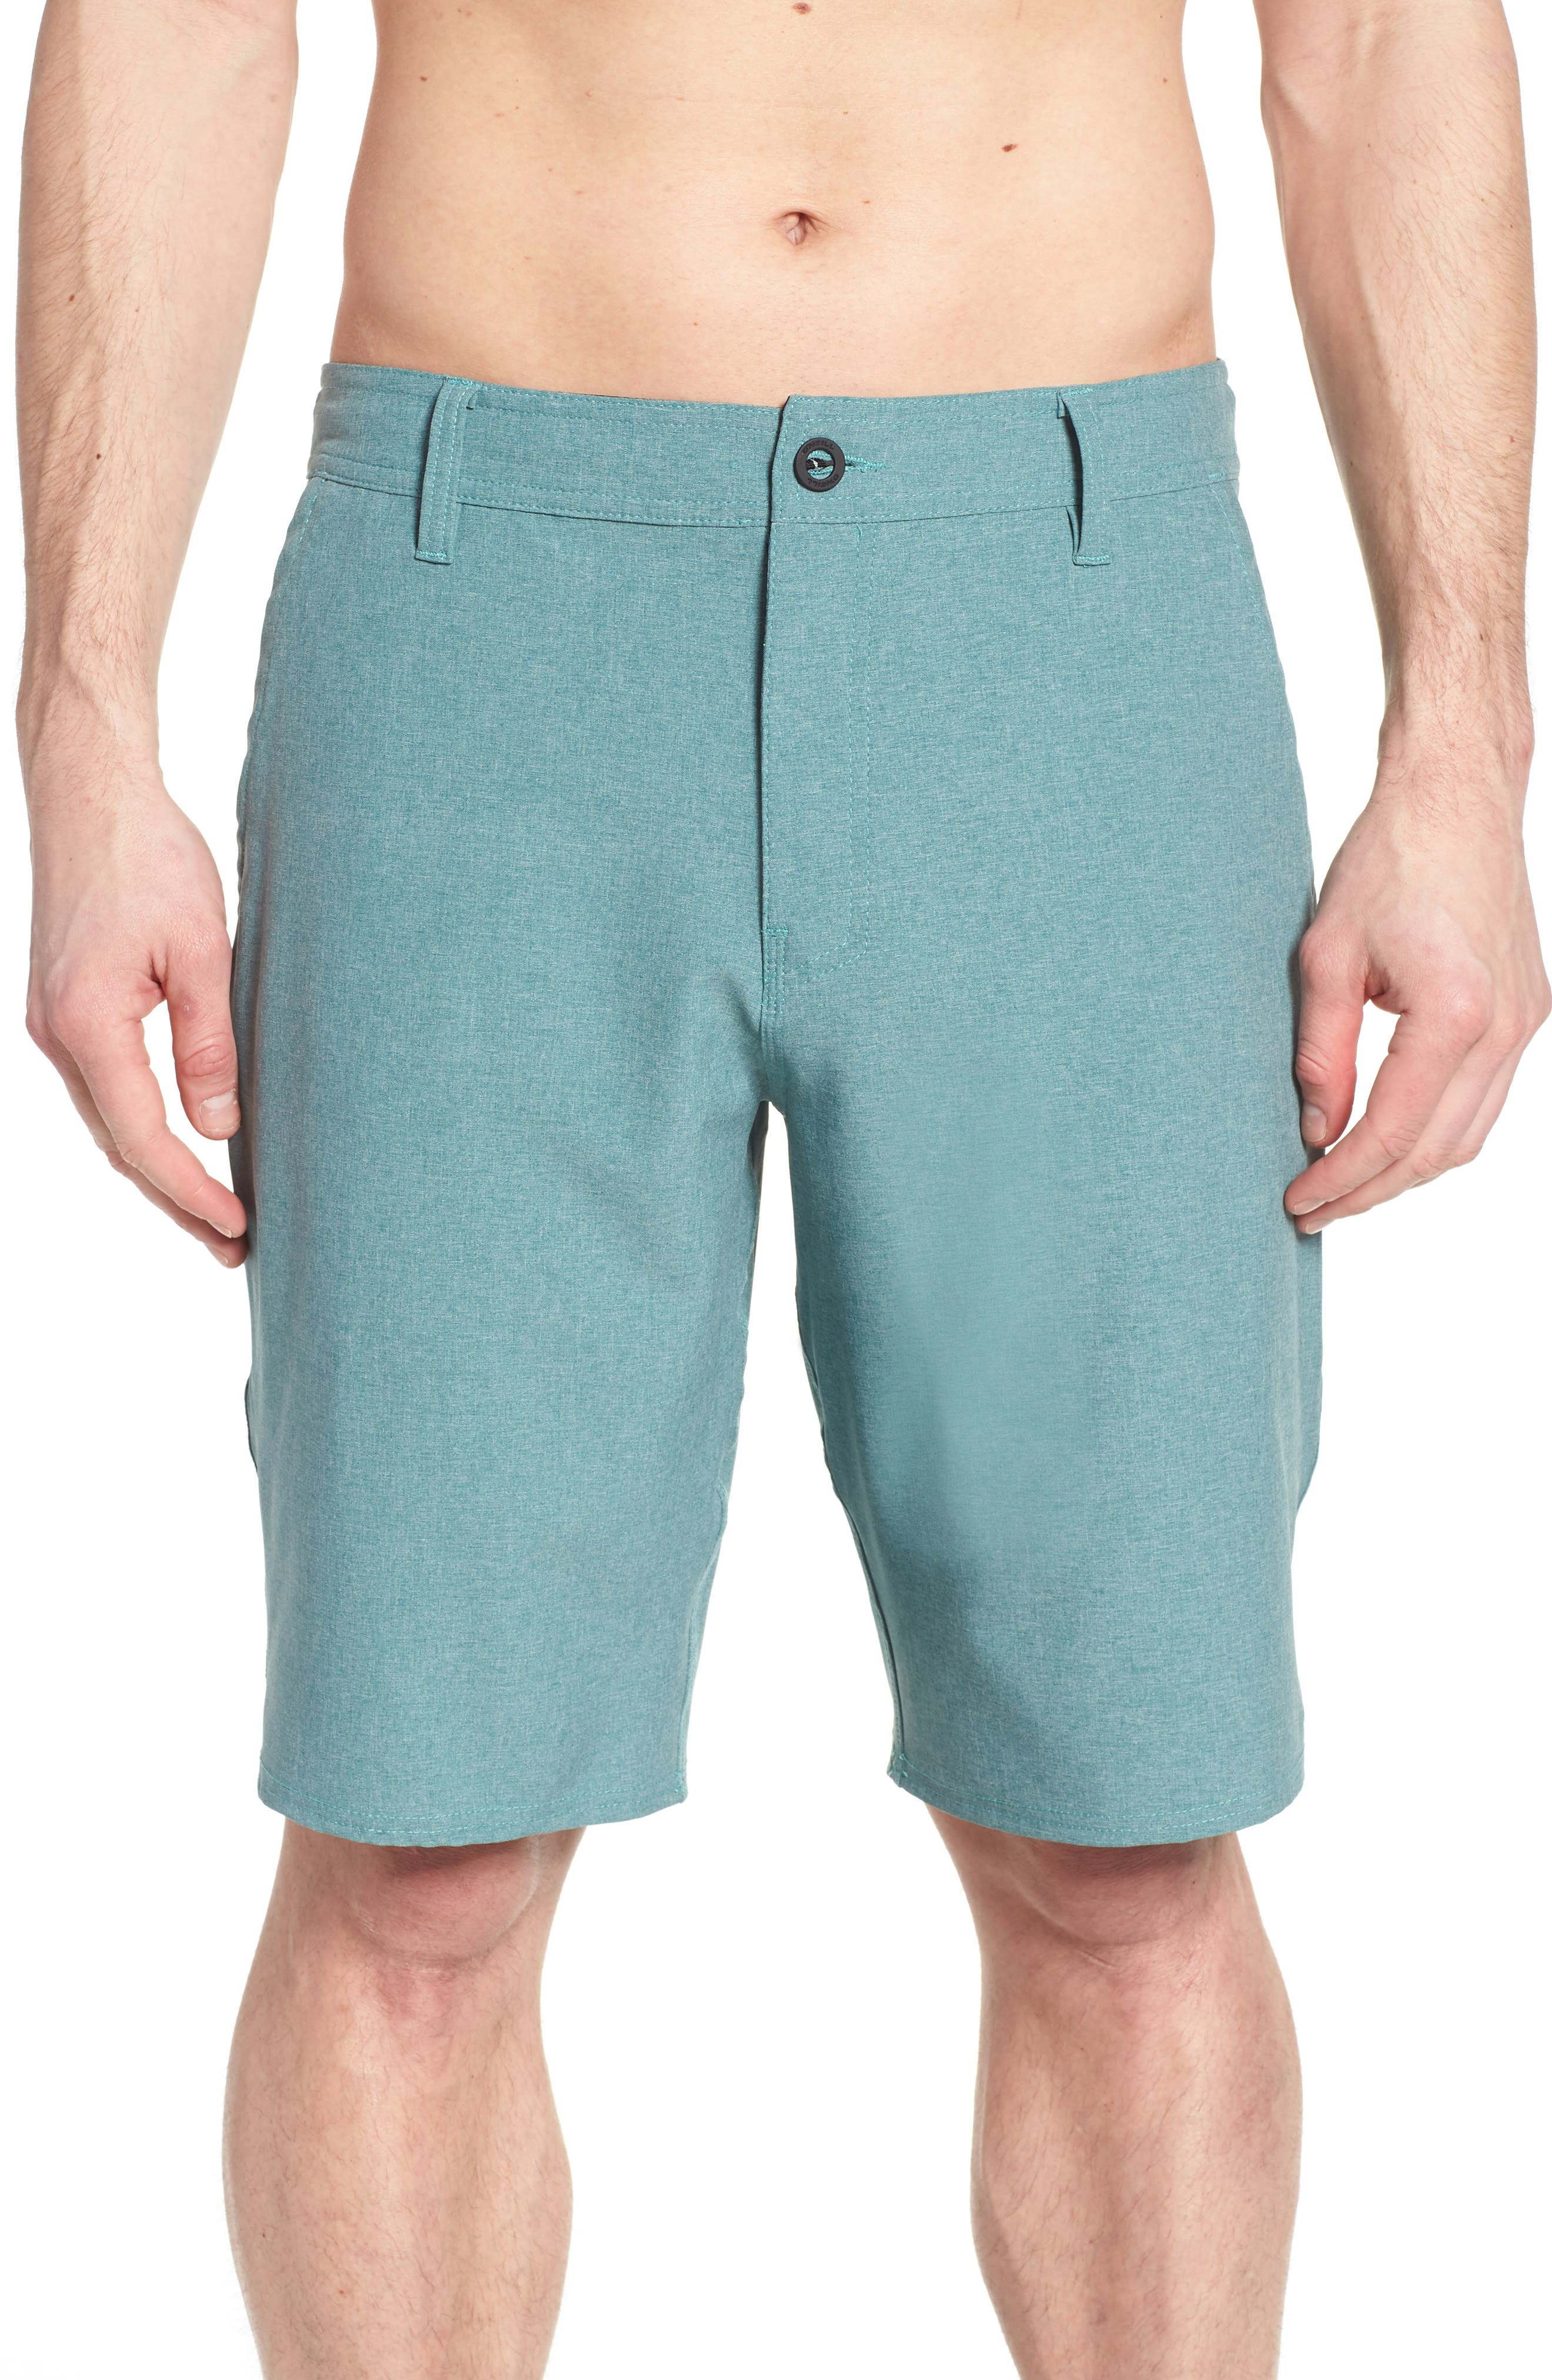 Loaded Heather Hybrid Shorts,                             Alternate thumbnail 4, color,                             300